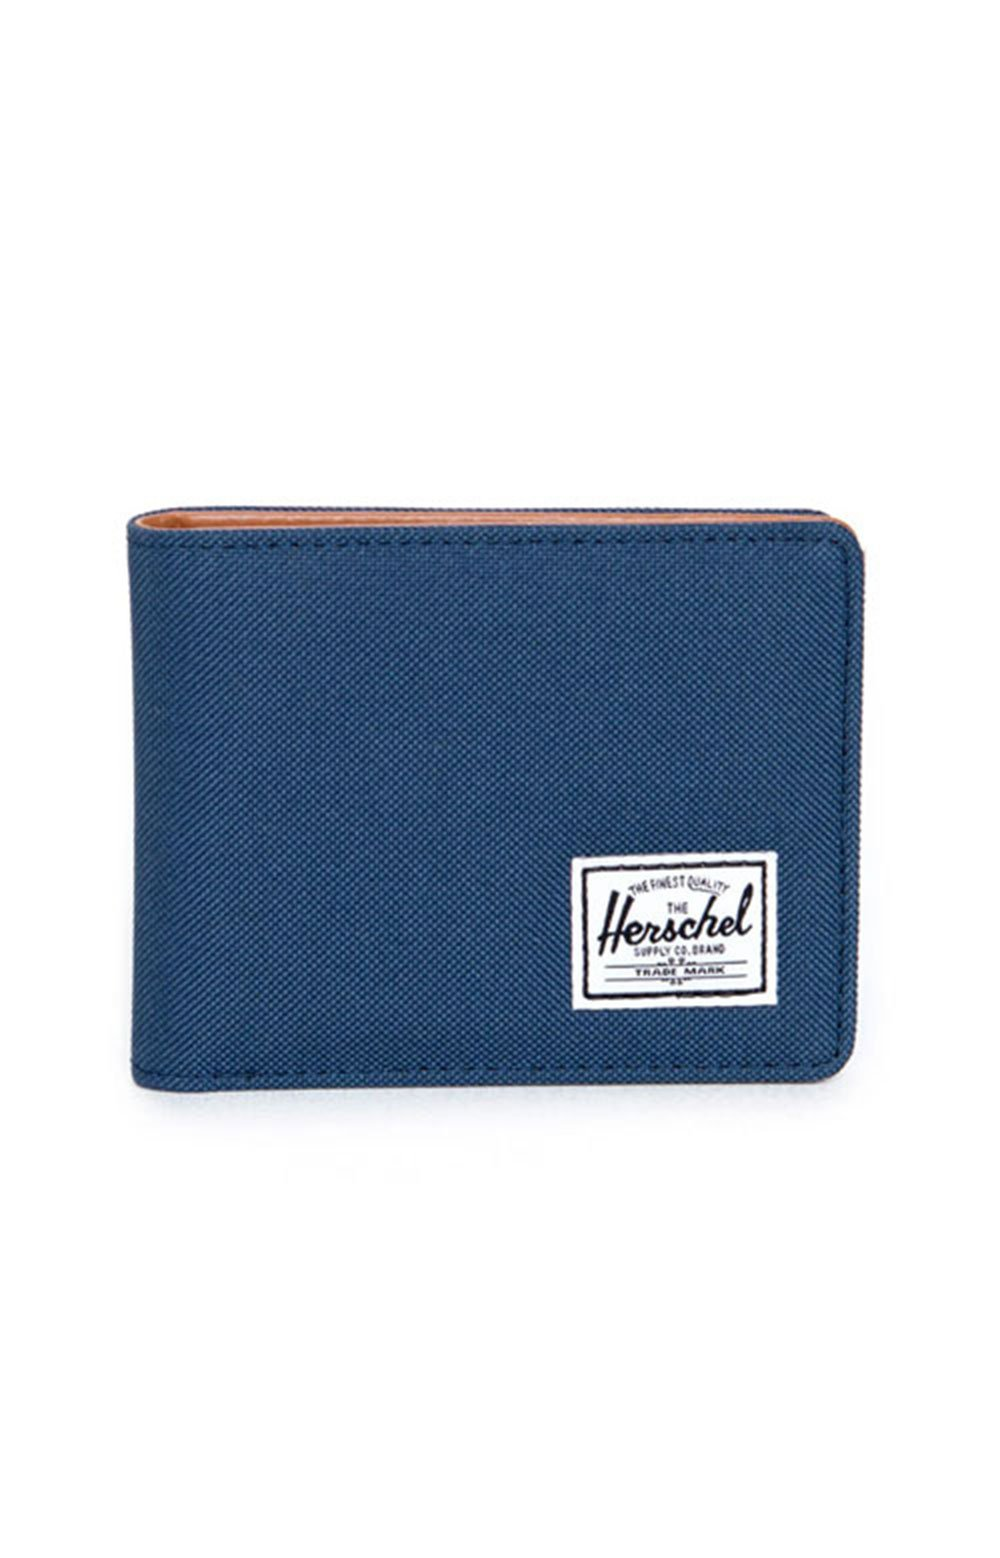 Hank Wallet - Navy/Tan